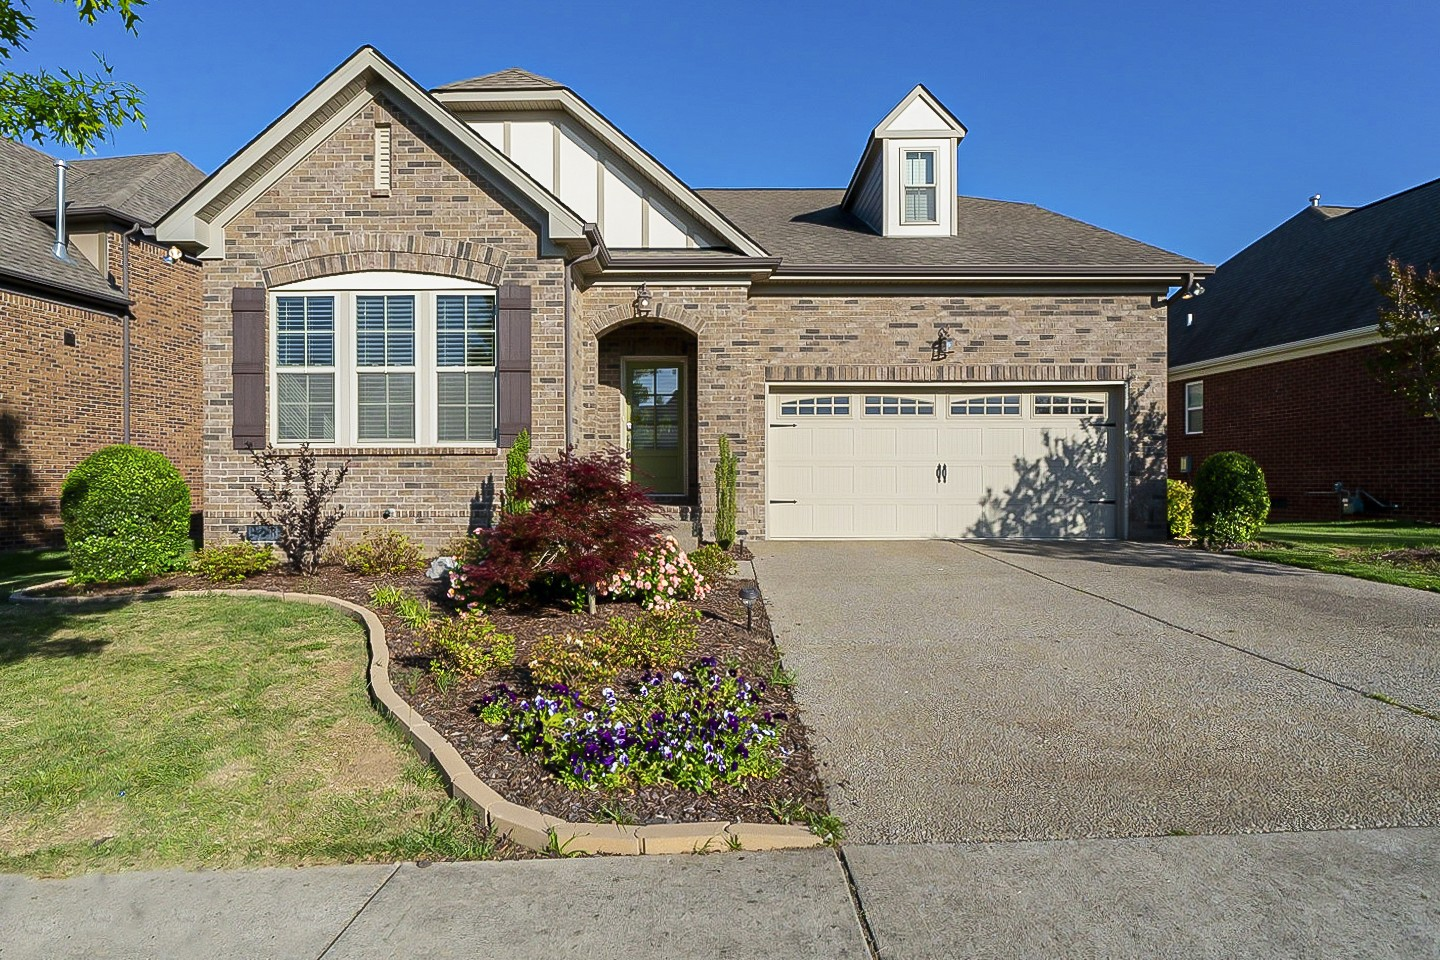 Built in 2013, this Nolensville two-story cul-de-sac home offers granite countertops, and a two-car garage.